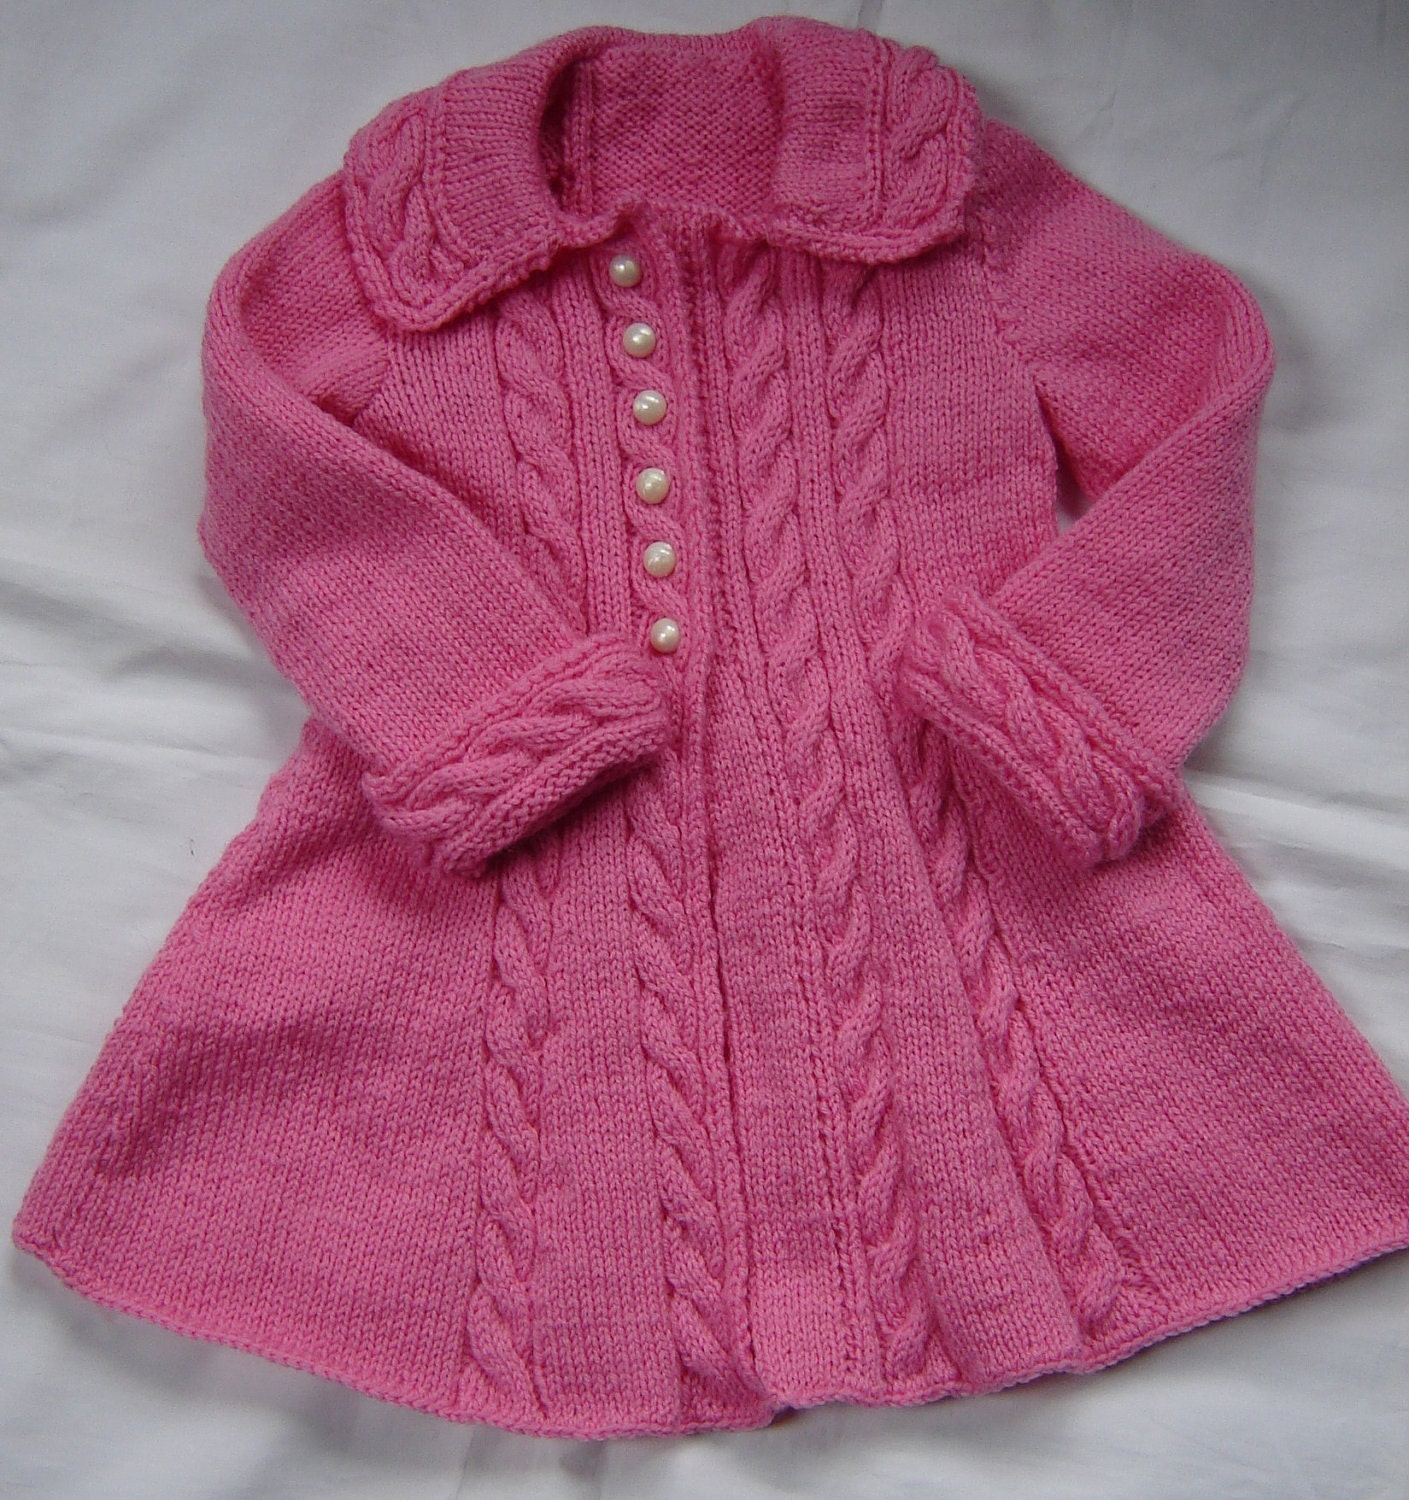 Free Knitting Patterns Girls : Sweater Pattern For Baby Girl - Long Sweater Jacket